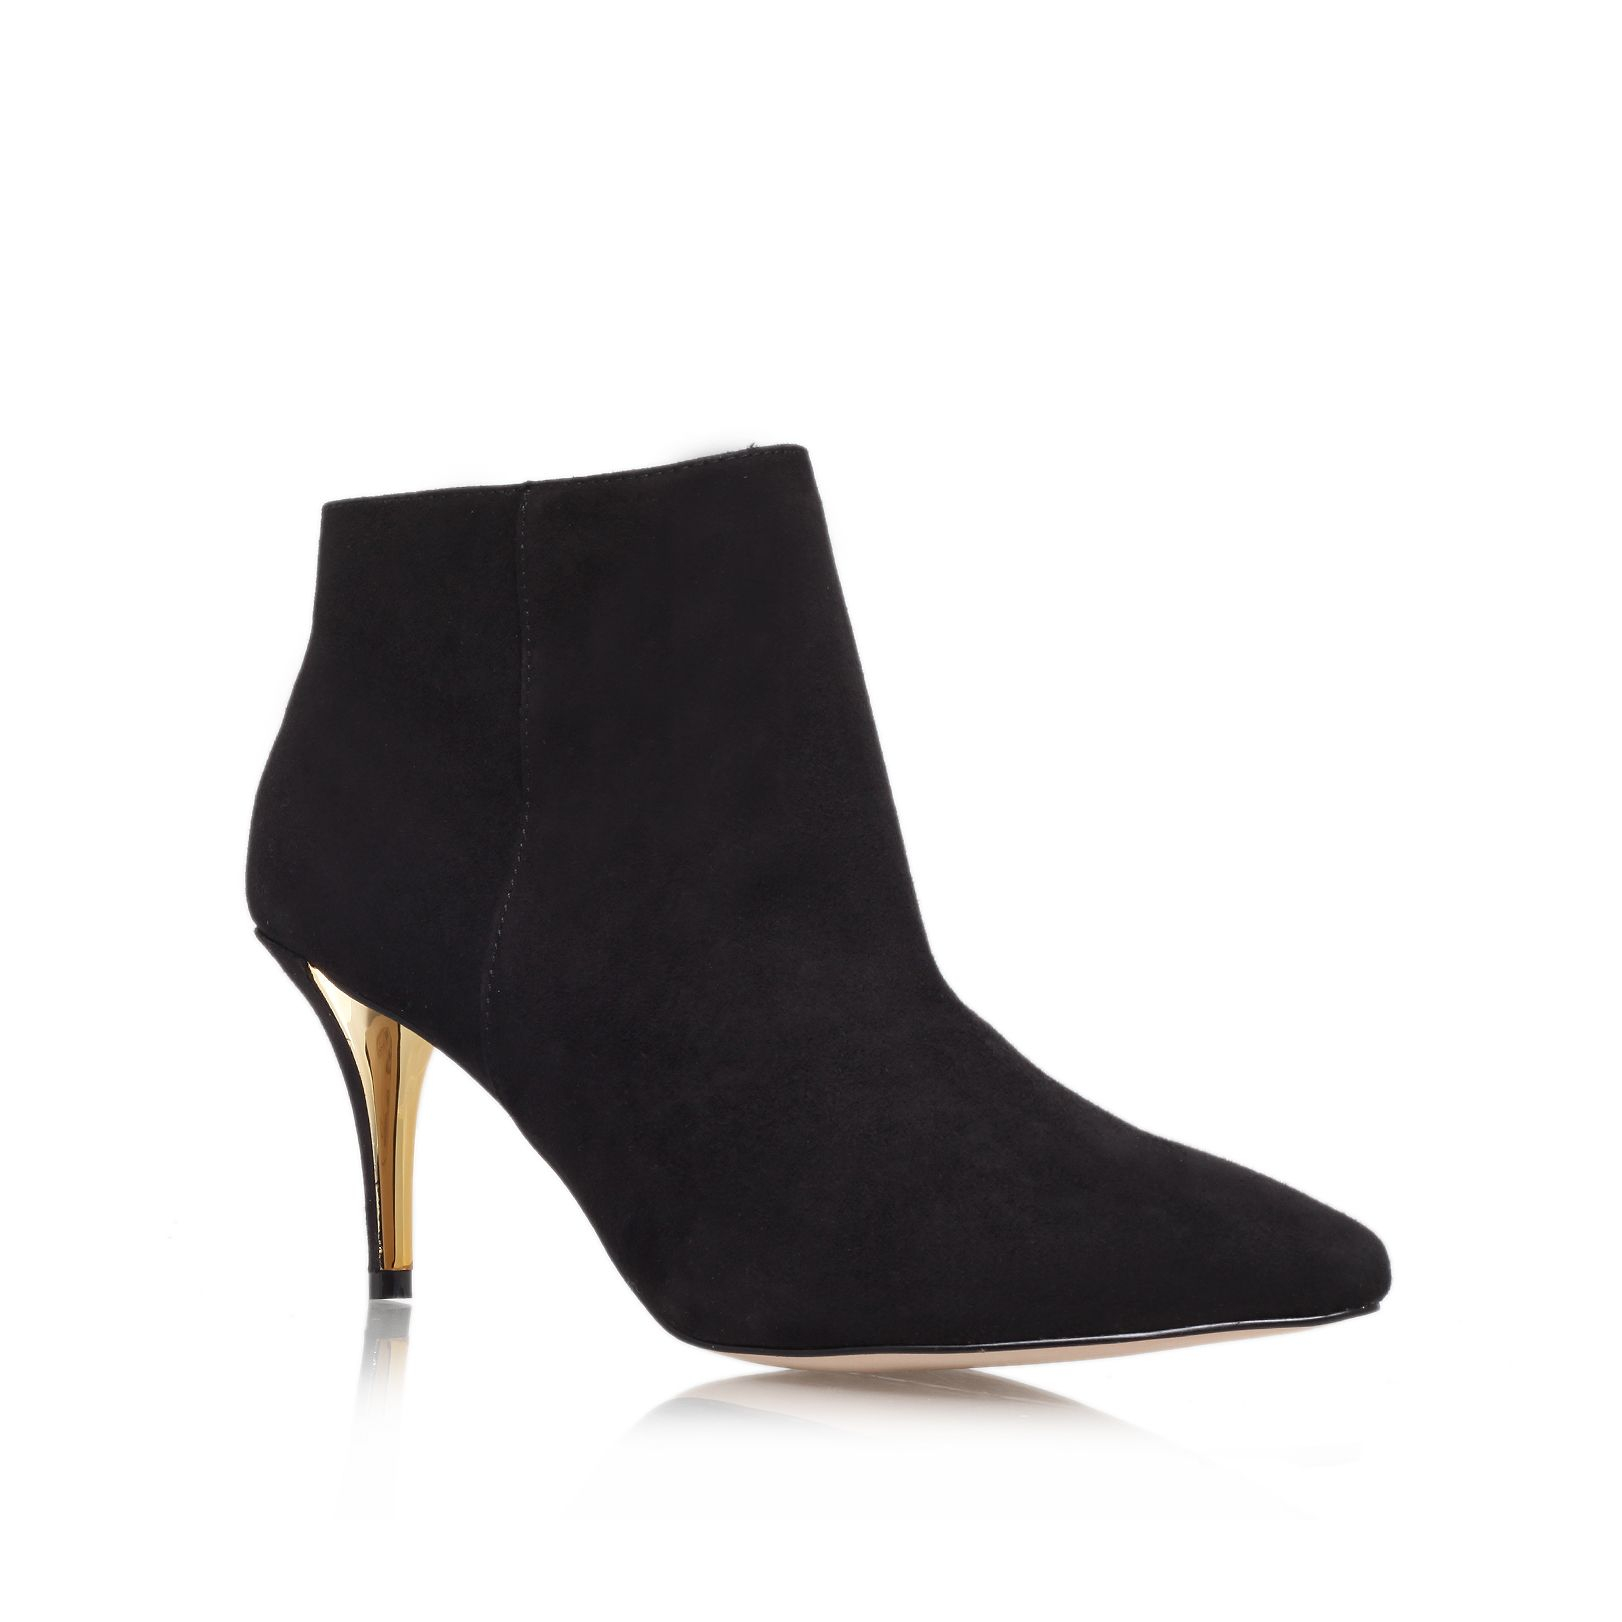 Carvela Kurt Geiger Apple Shoe Boot In Black | Lyst